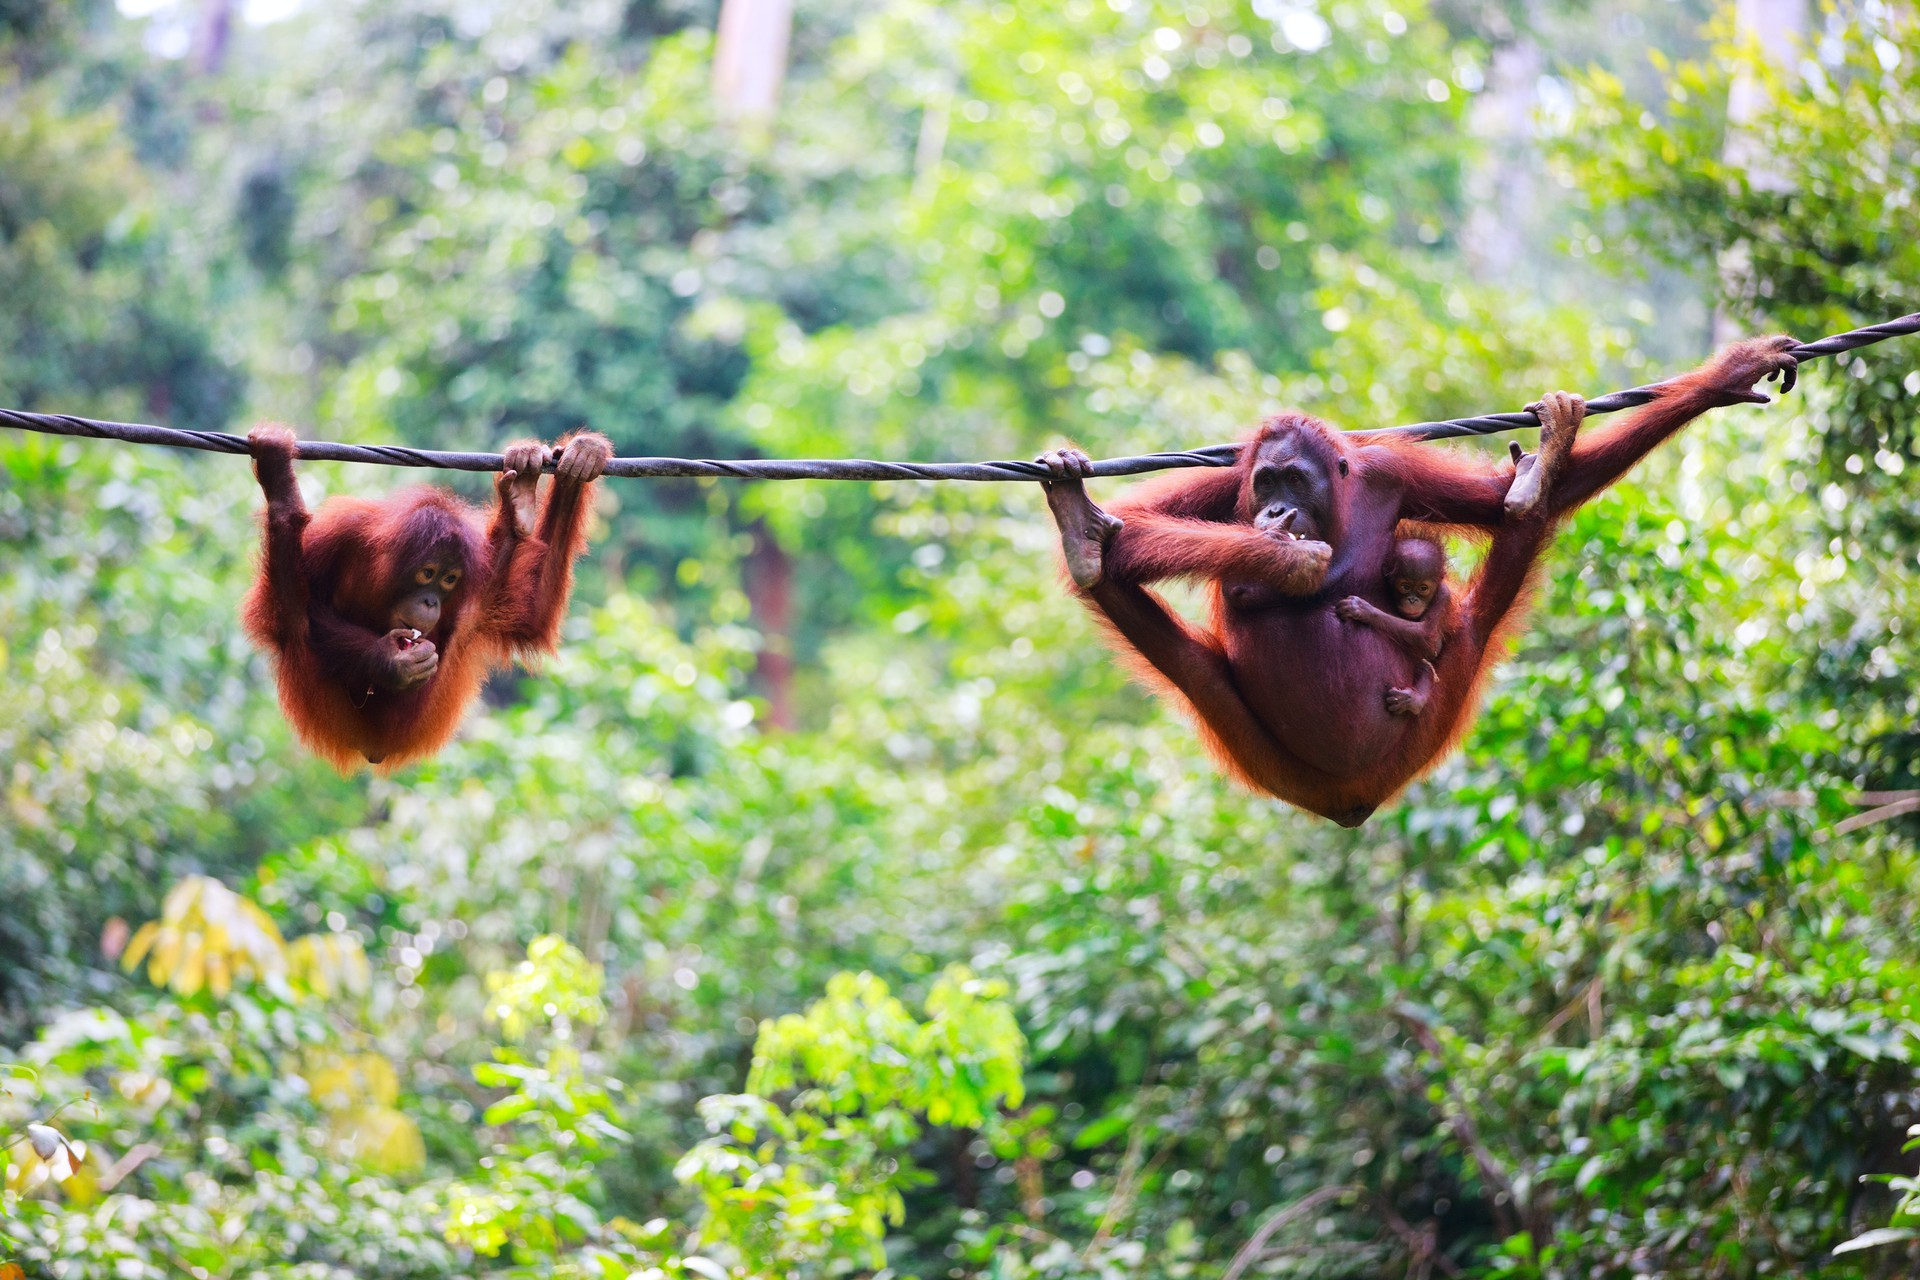 Borneo holidays: Orangutans in Sepilok Sanctuary